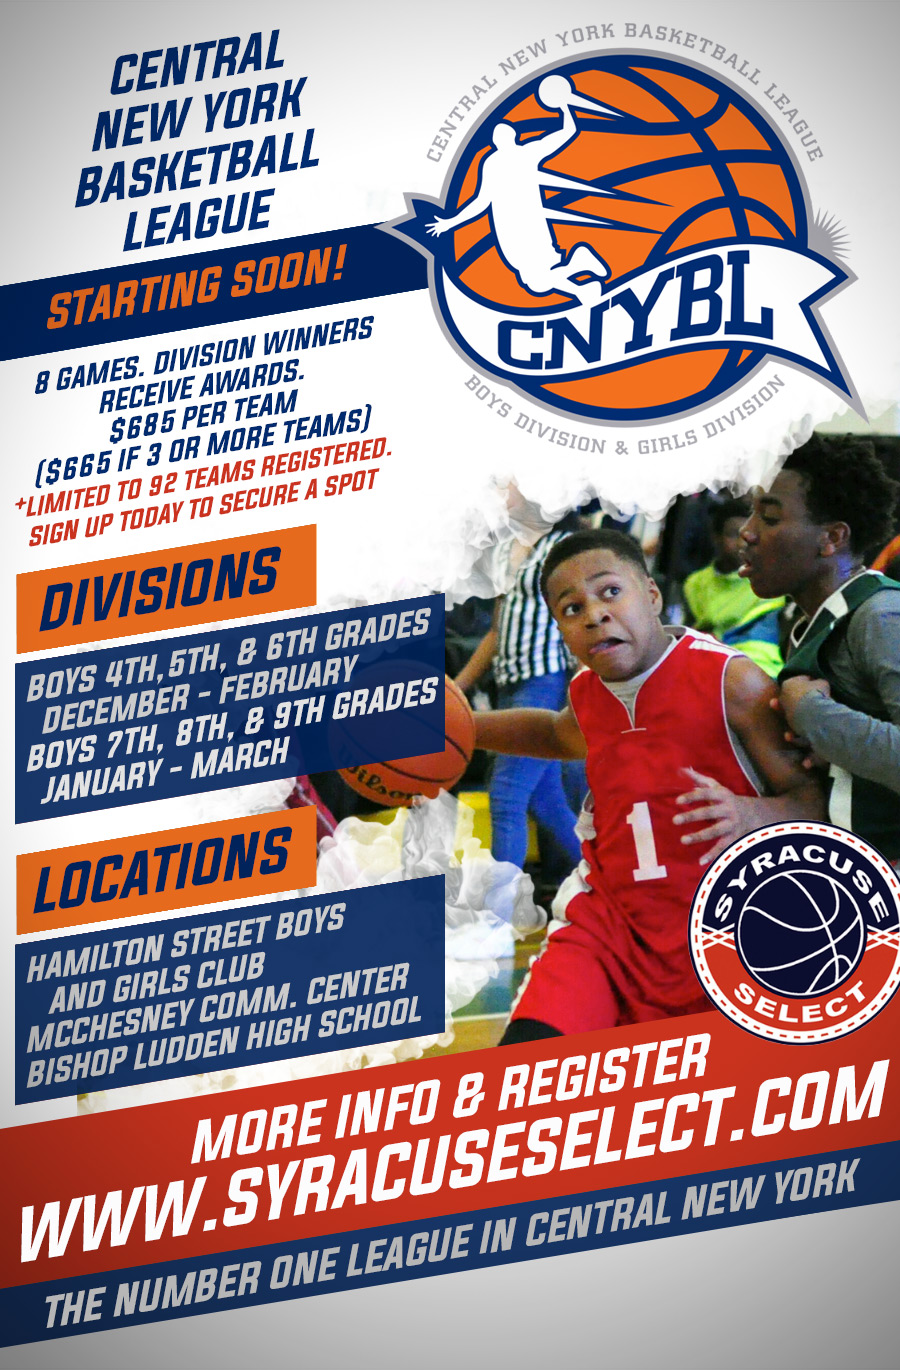 Central New York Basketball League Regeneration Now Open